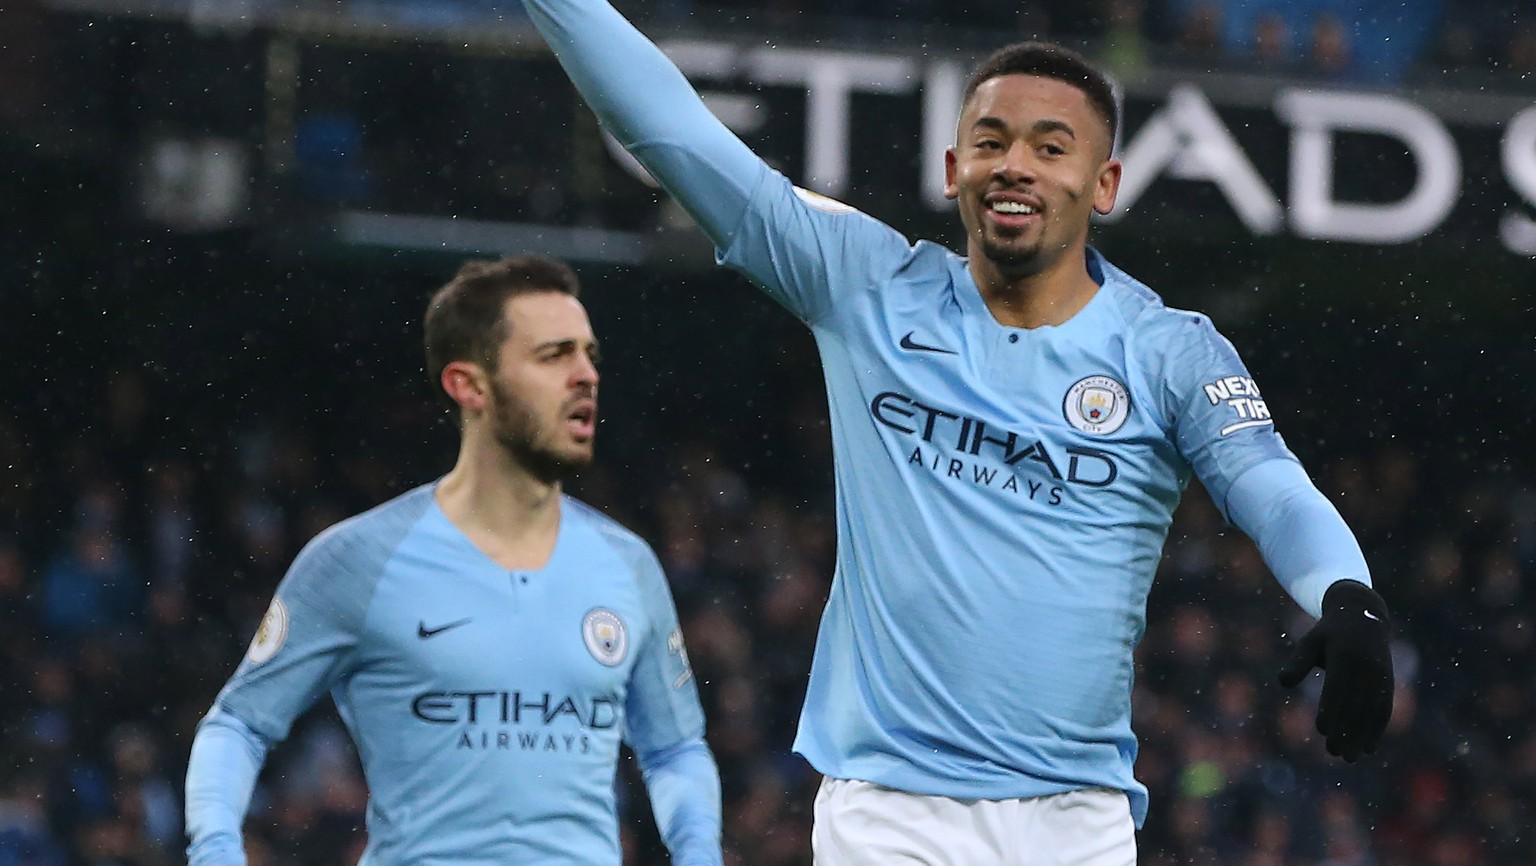 epa07233195 Manchester City's Gabriel Jesus (R) celebrates scoring during the English Premier League soccer match between Manchester City and Everton at the Etihad Stadium in Manchester, Britain, 15 December 2018.  EPA/NIGEL RODDIS EDITORIAL USE ONLY. No use with unauthorised audio, video, data, fixture lists, club/league logos 'live' services. Online in-match use limited to 75 images, no video emulation. No use in betting, games or single club/league/player publications.